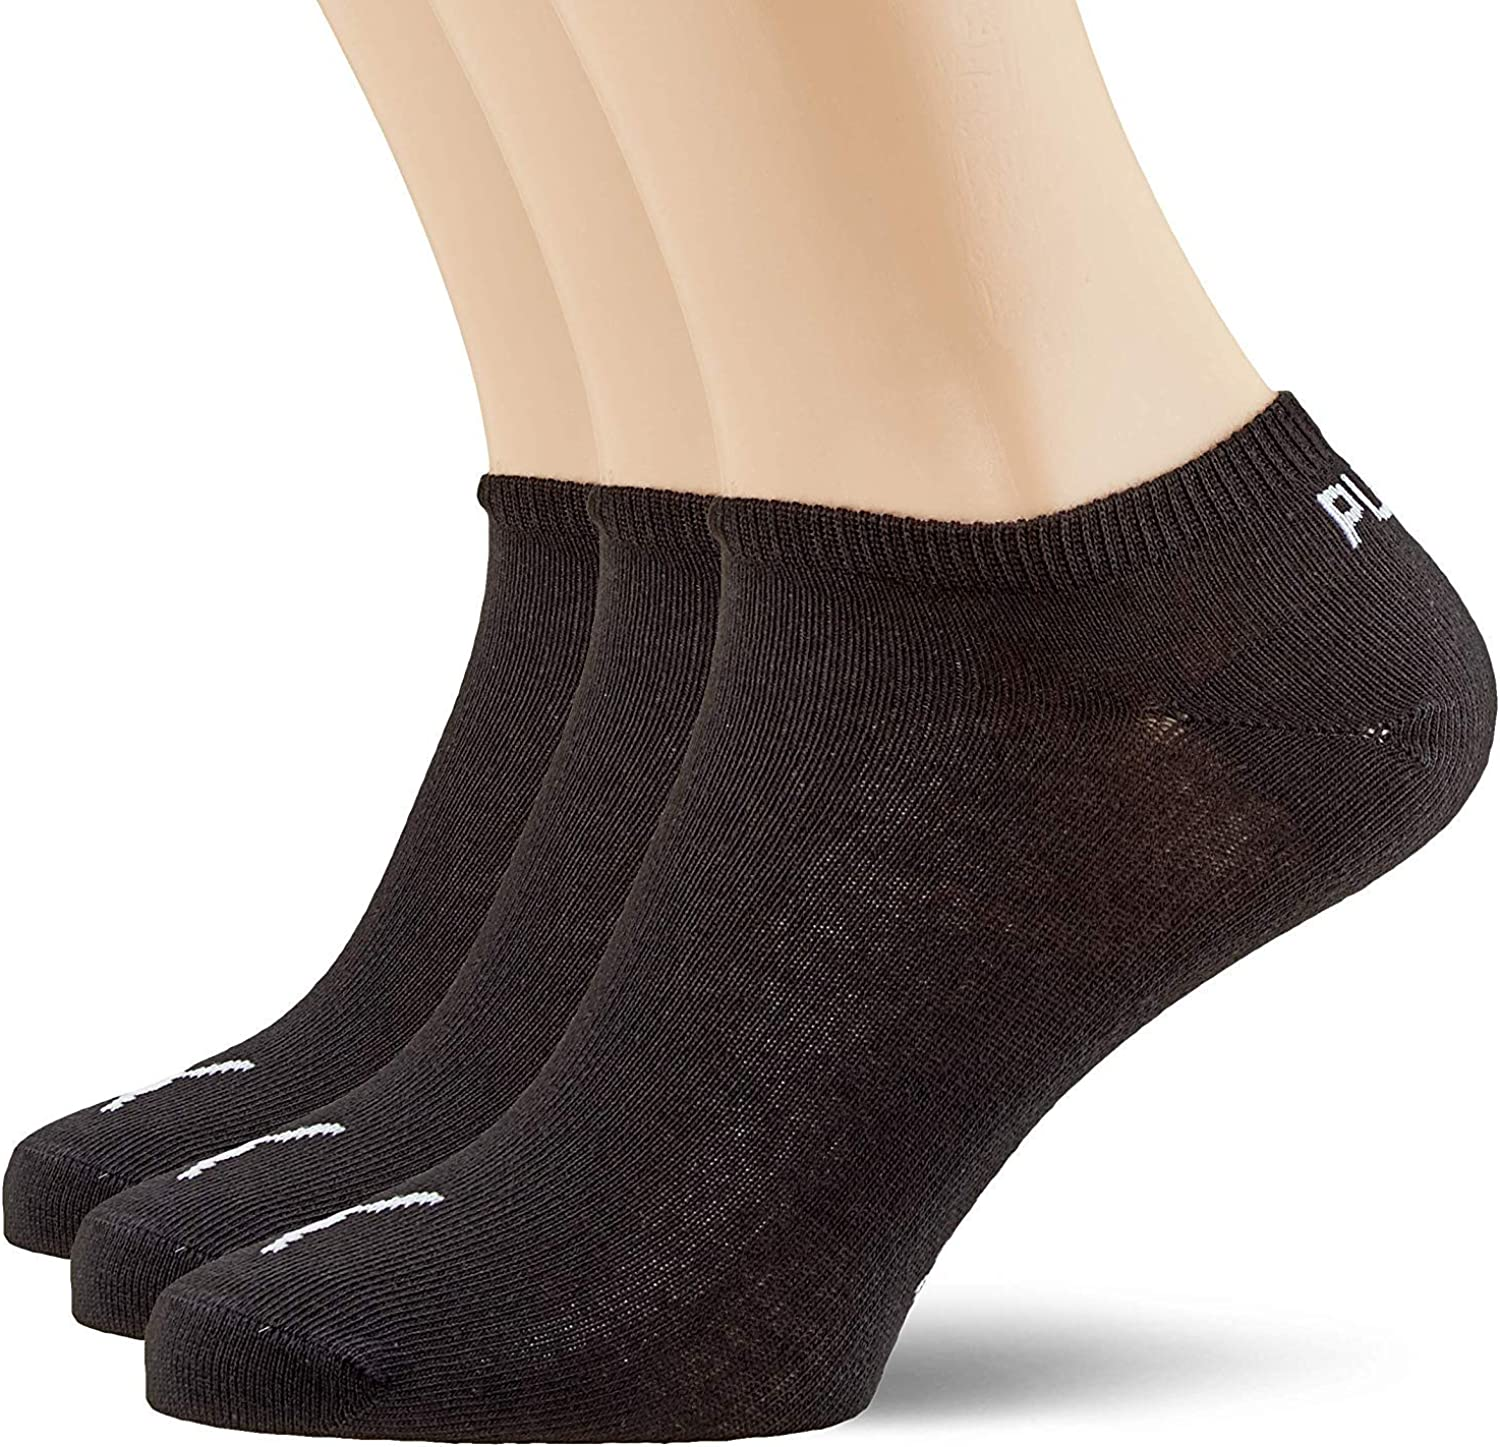 Puma Sportsocken Invisible 3P, Calcetines Unisex adulto, pack de 3